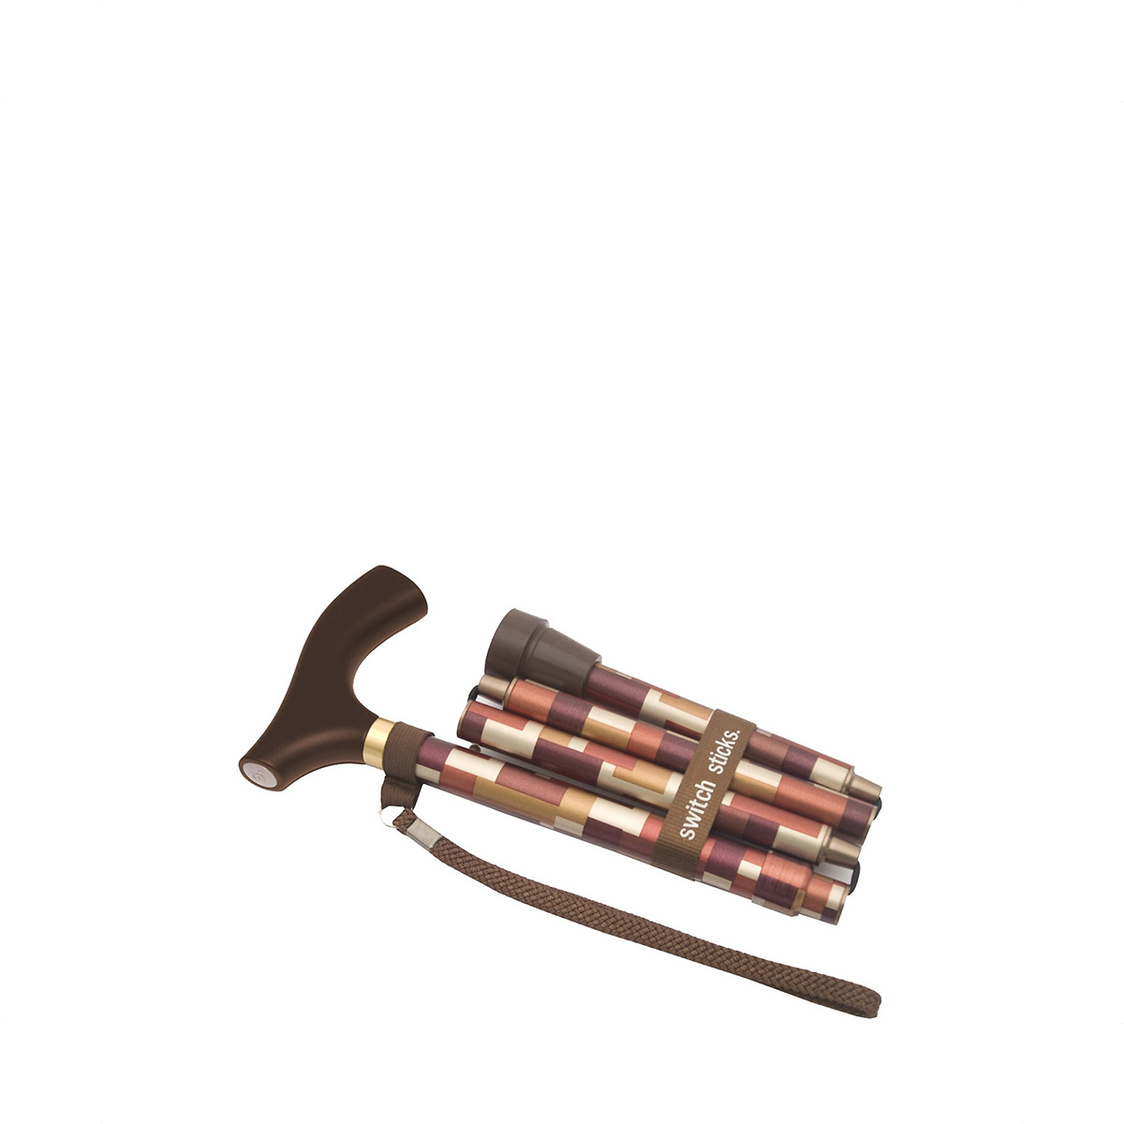 Patterned Maple Foldable Designer Walking Stick Premium Range